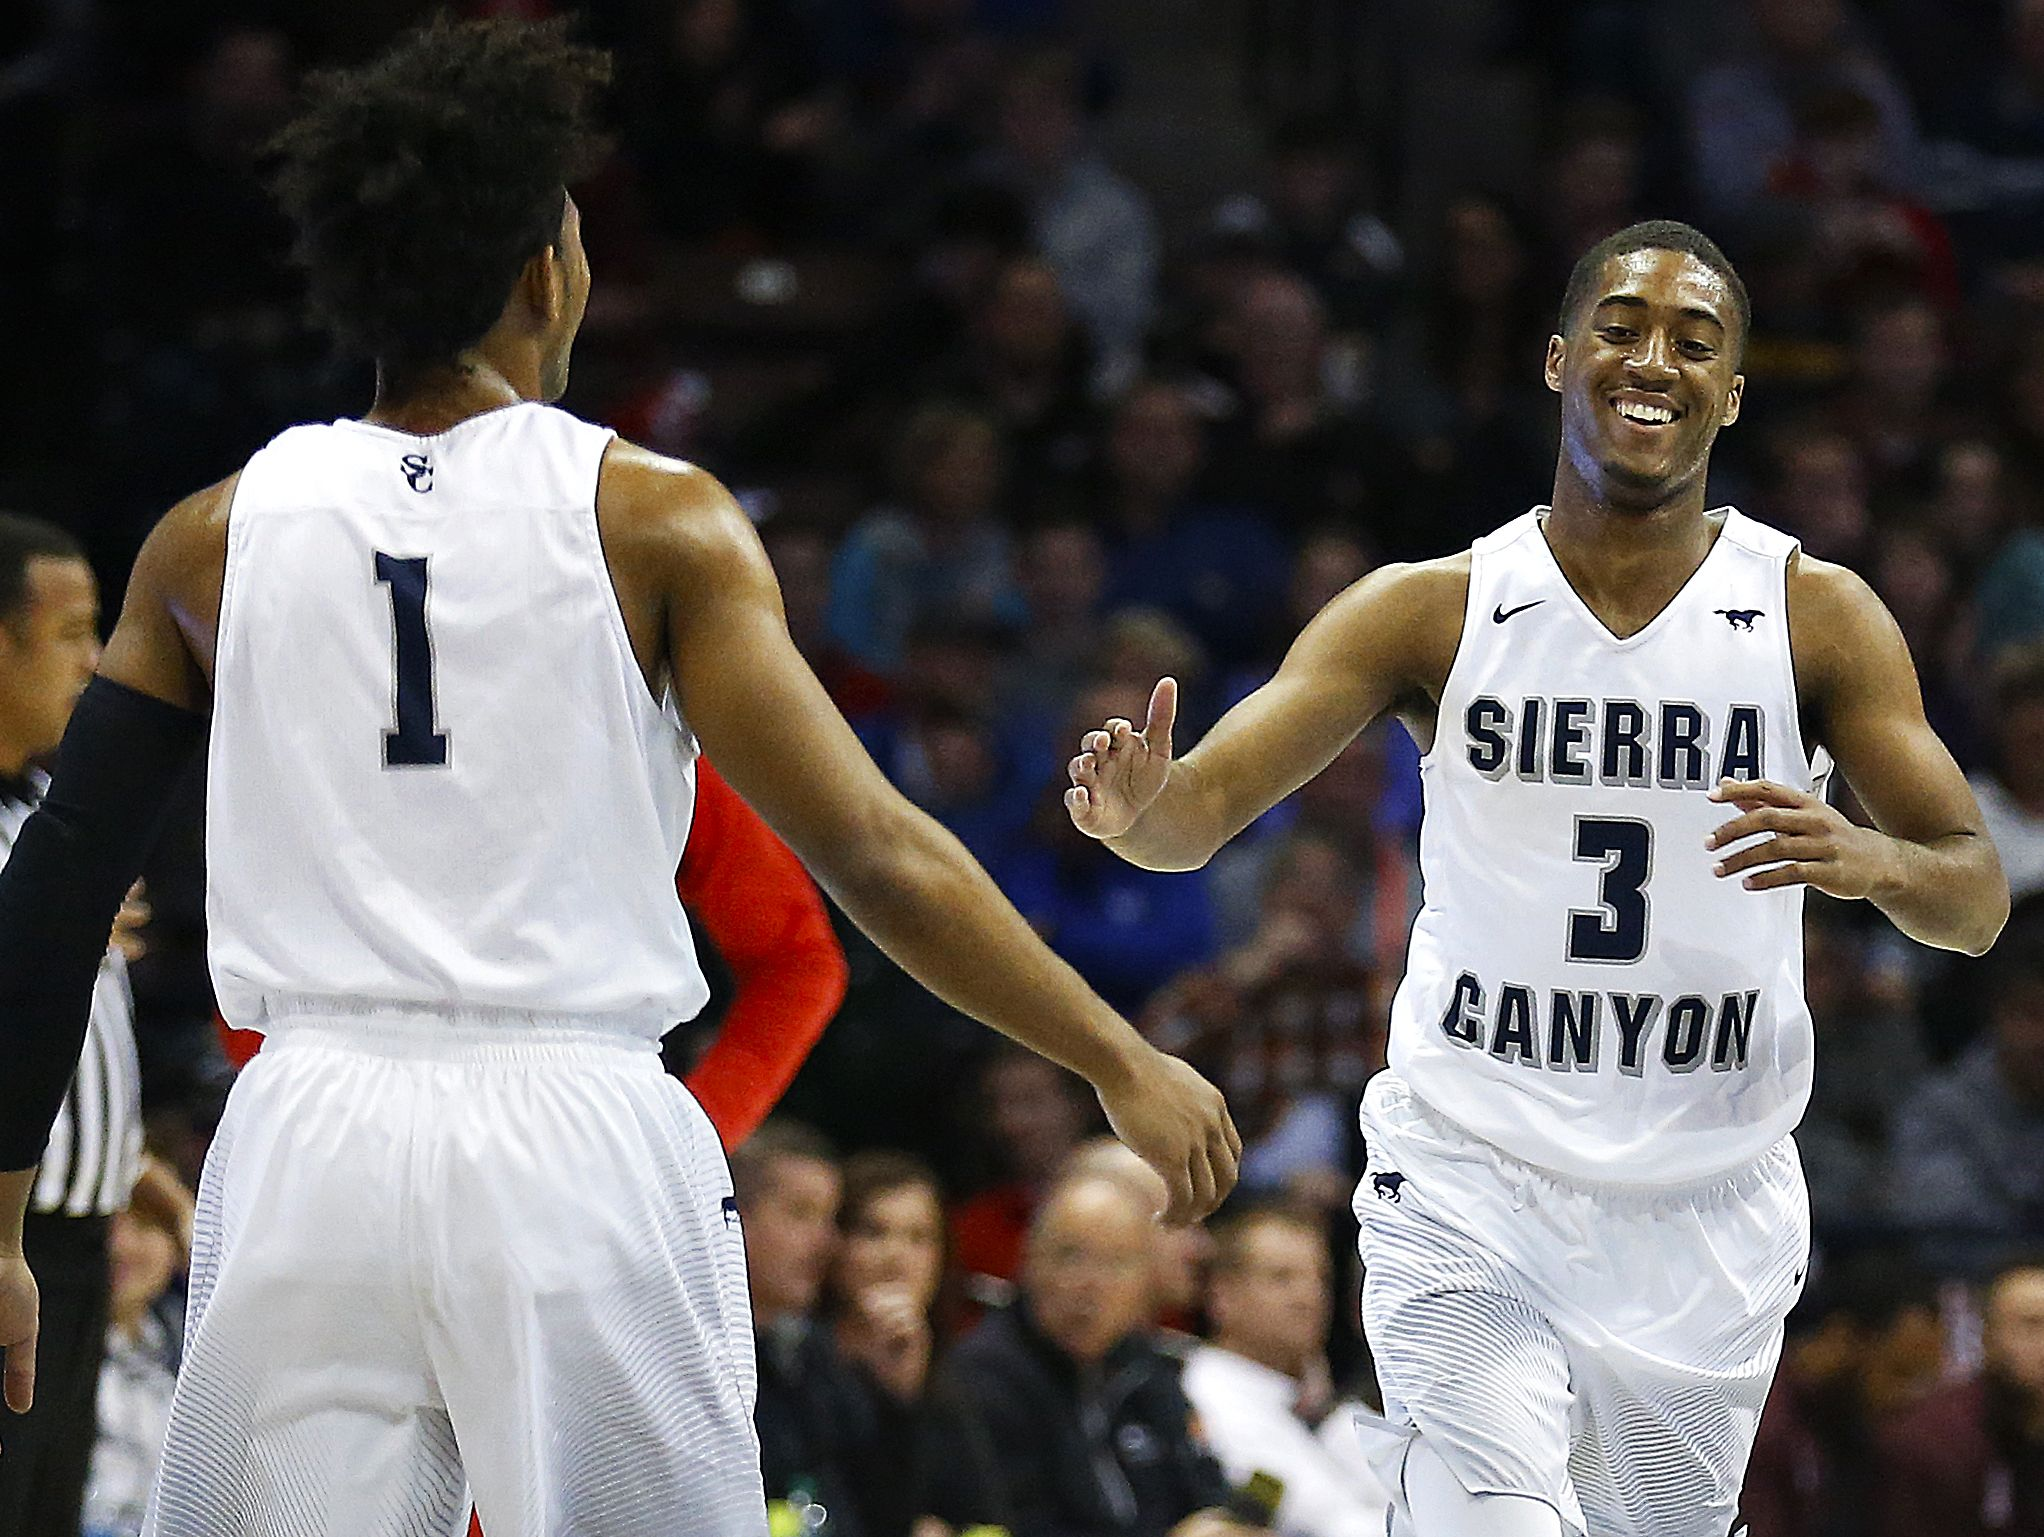 Sierra Canyon School (Chatsworth, Calif.) guard Remy Martin (1) and guard Terrance McBride (3) celebrate during first quarter action of the 2017 Bass Pro Tournament of Champions high school basketball game between the Sierra Canyon School Trailblazers (Chatsworth, Calif.) and the Findlay Prep Pilots (Las Vegas, Nev.) at JQH Arena in Springfield, Mo. on Jan. 13, 2017. The Sierra Canyon School Trailblazers won the game 76-47.